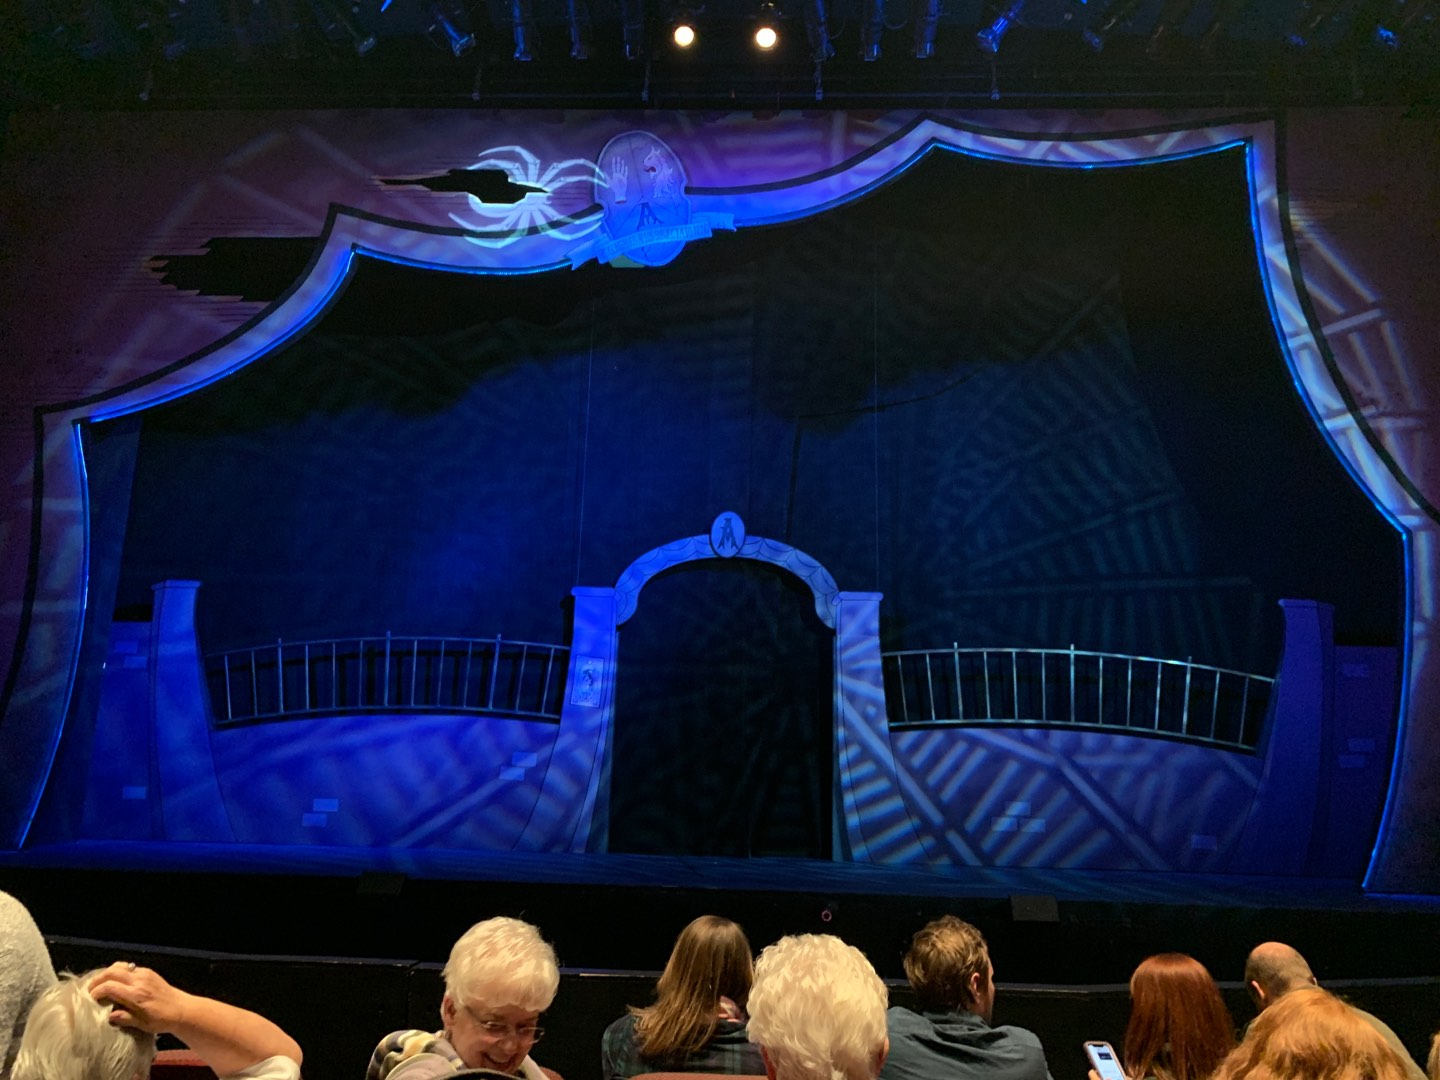 Festival Playhouse at Wright State University Section Main Floor Row D Seat 13